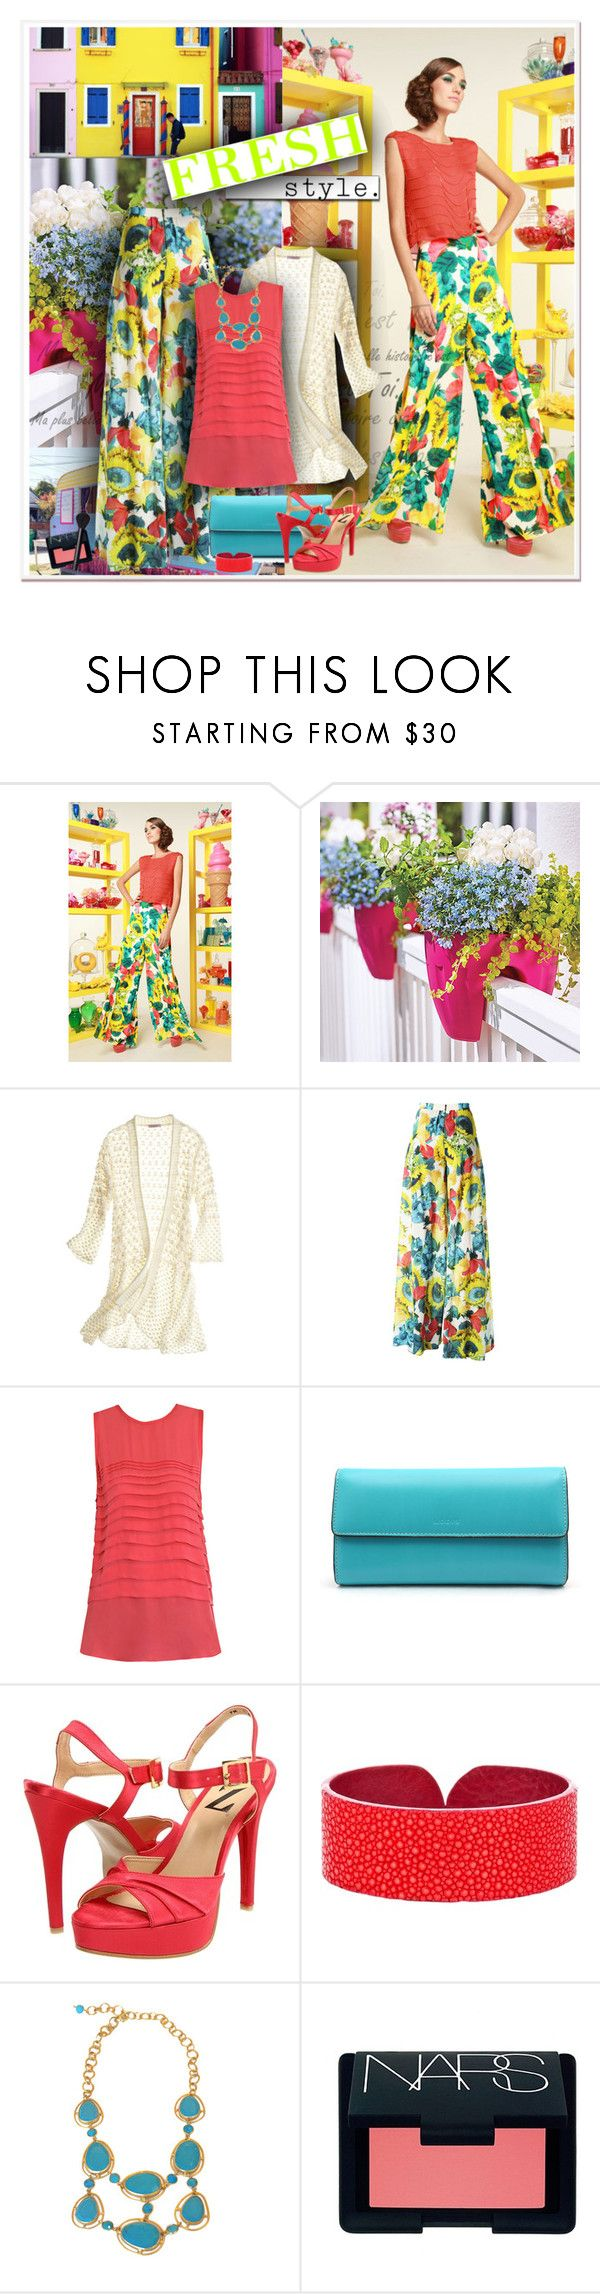 """FRESH STYLE"" by gustosa ❤ liked on Polyvore featuring Alice + Olivia, Improvements, Calypso St. Barth, L'Agence, Lodis, Type Z, A Cuckoo Moment, Kanupriya and NARS Cosmetics"